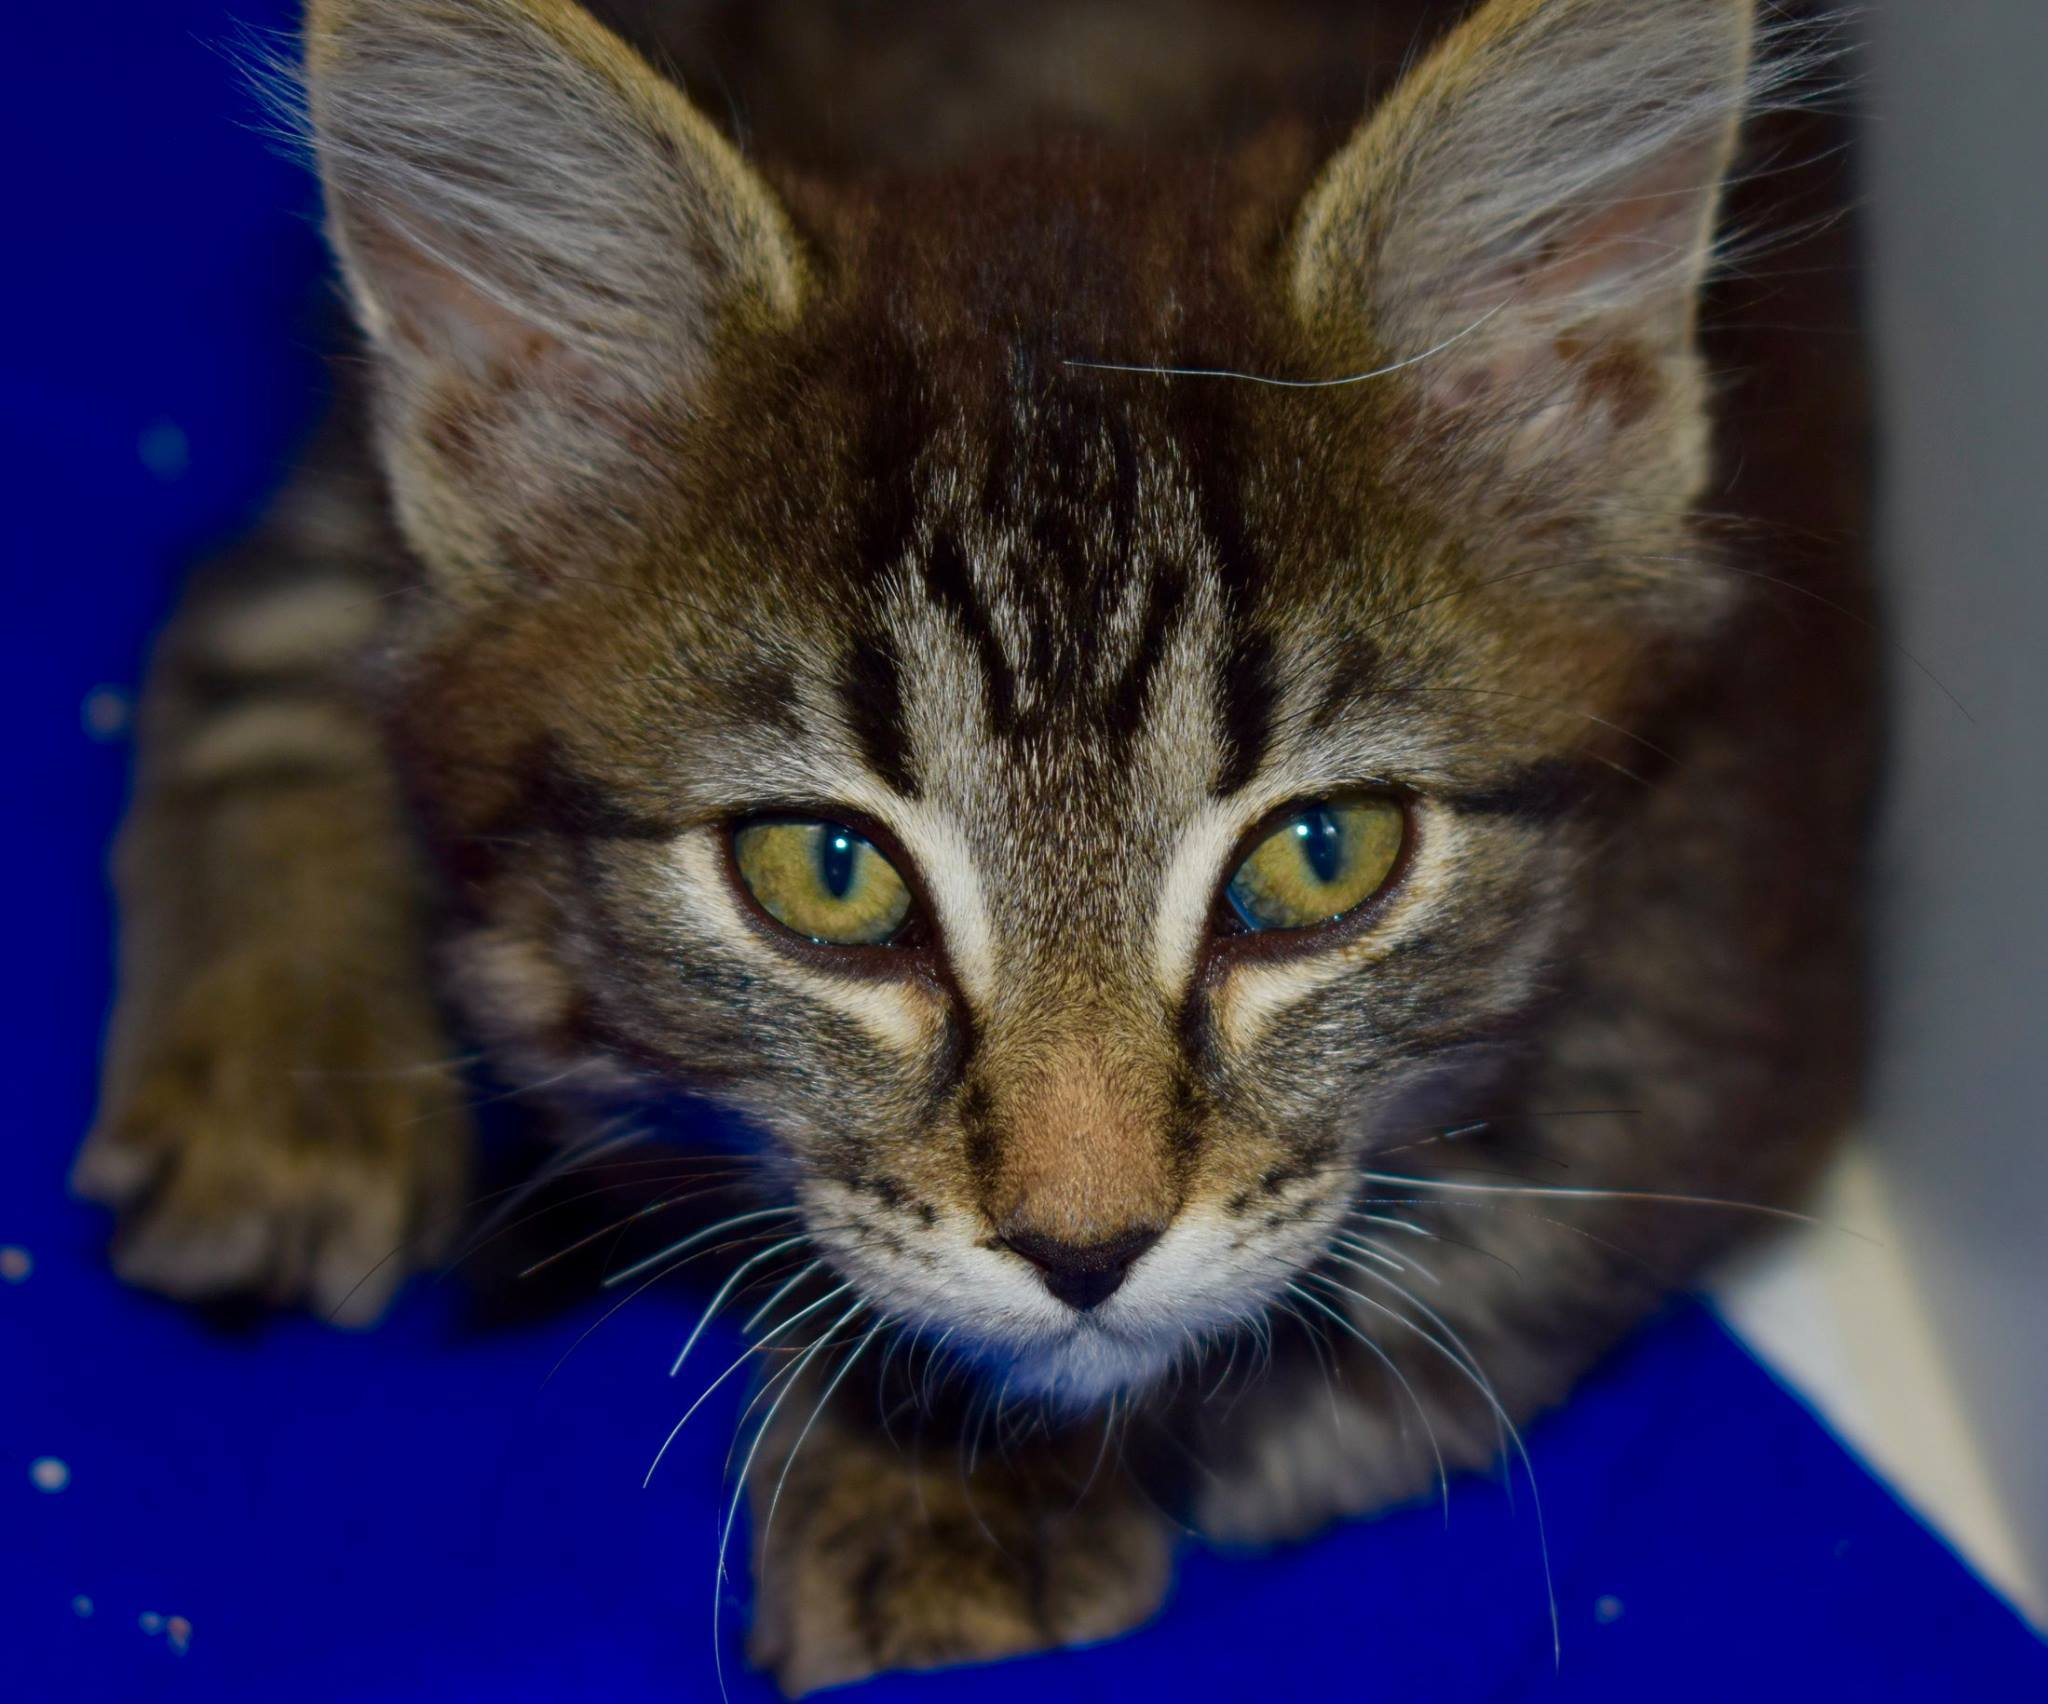 Cat for Adoption – Kittens near Rifle CO